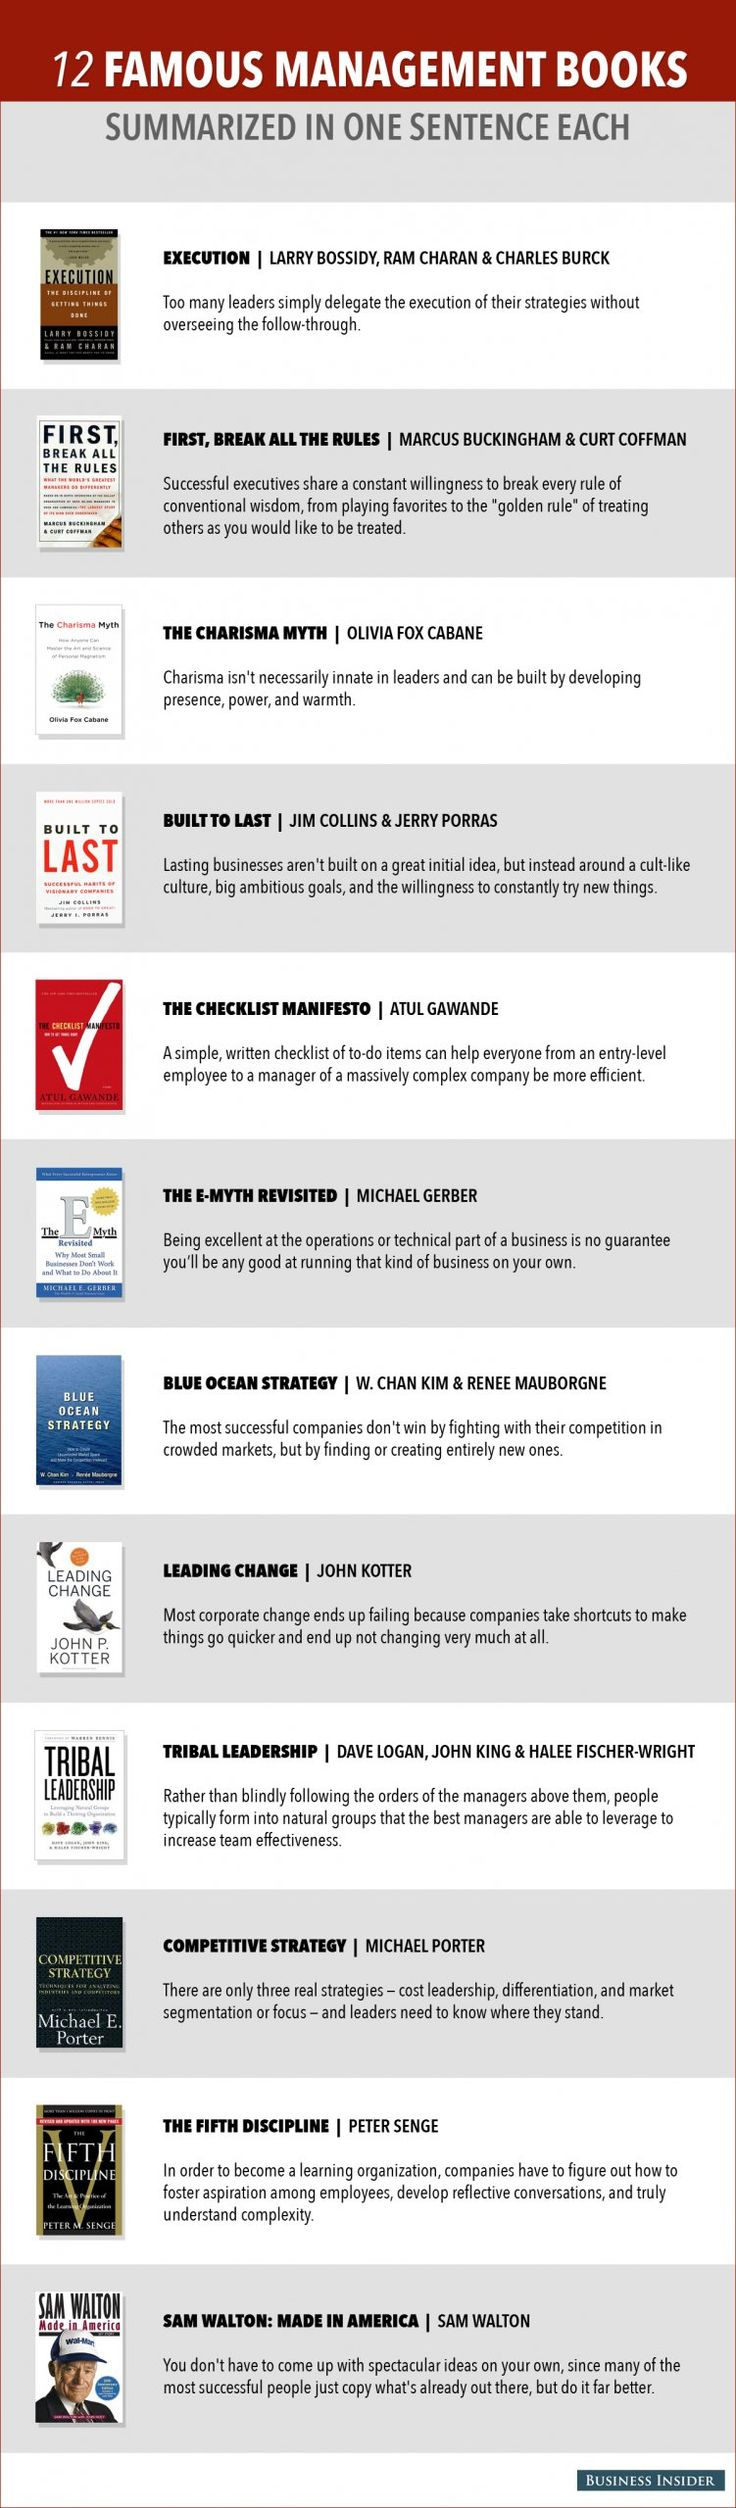 12 Popular Management Books Summarized In One Sentence Each  Read more: http://www.businessinsider.com/famous-management-book-summaires-2013-11#ixzz2ldj4KlfX